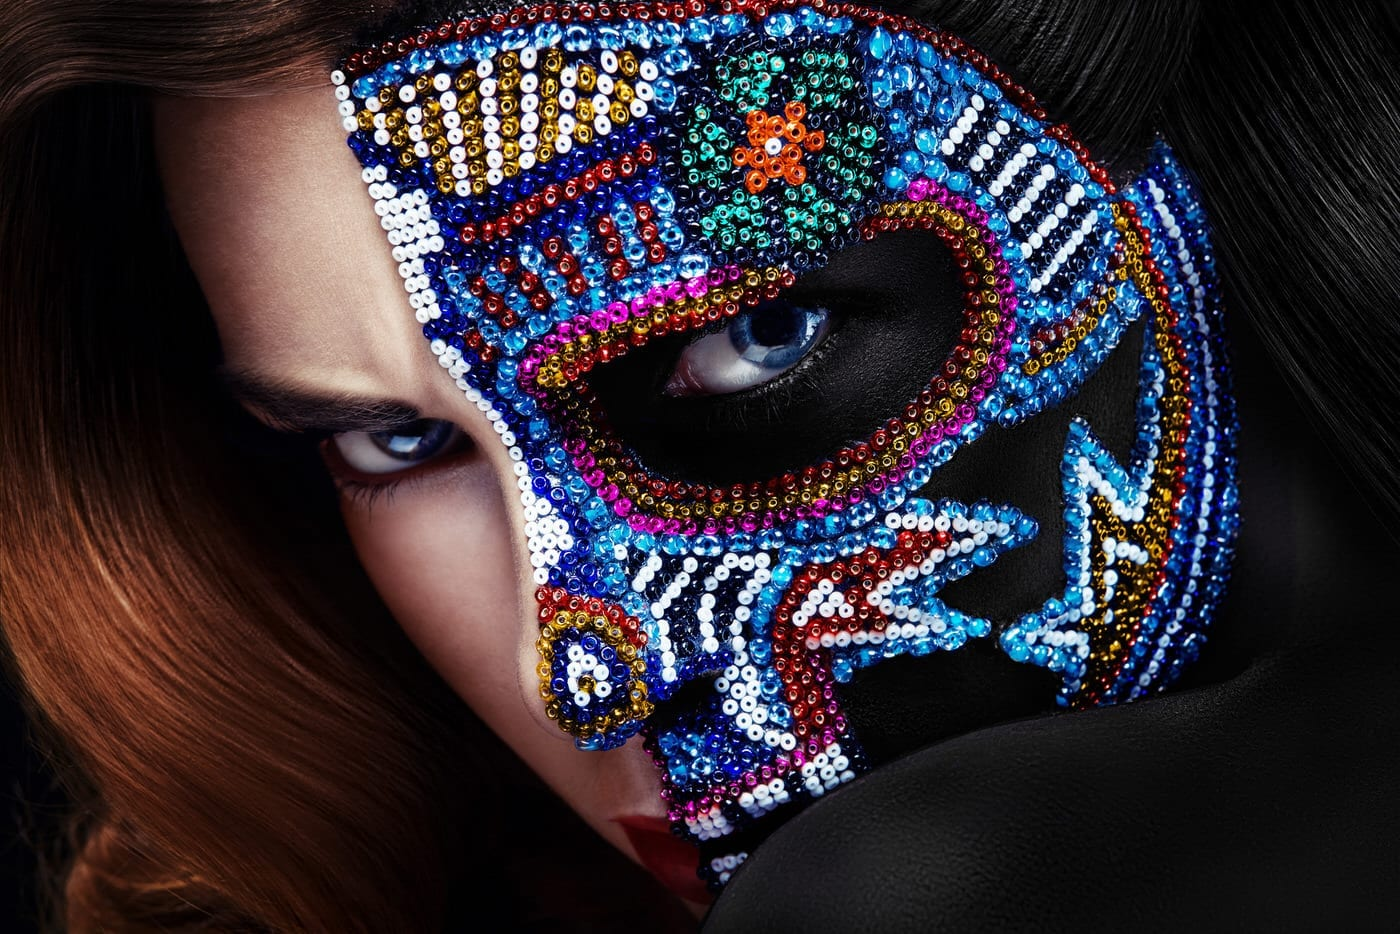 beads glued on face for beauty photography